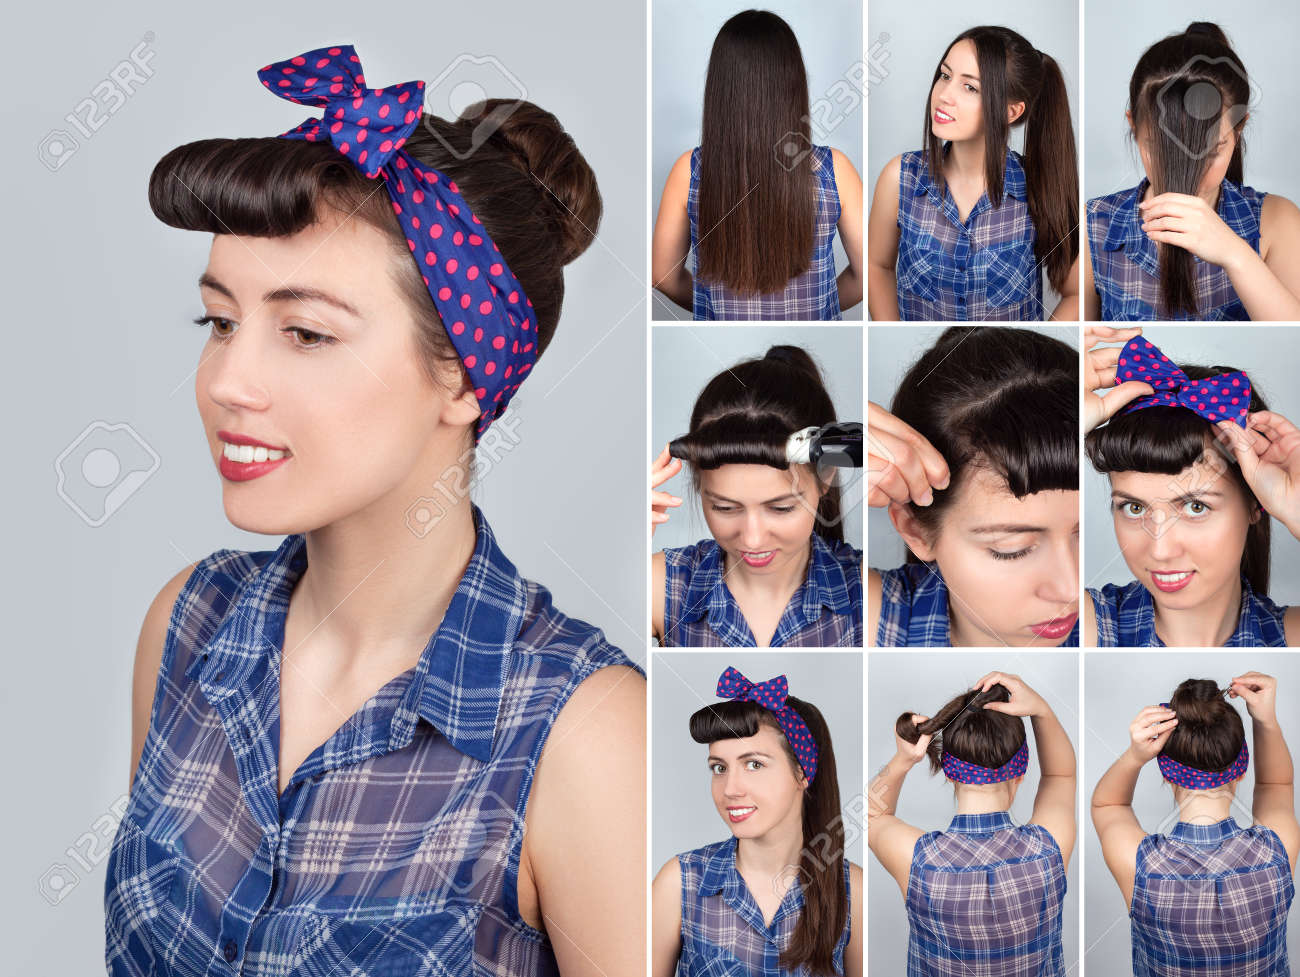 Simple Hairstyle Bun Tutorial For Woman Hairstyle For Long Hair